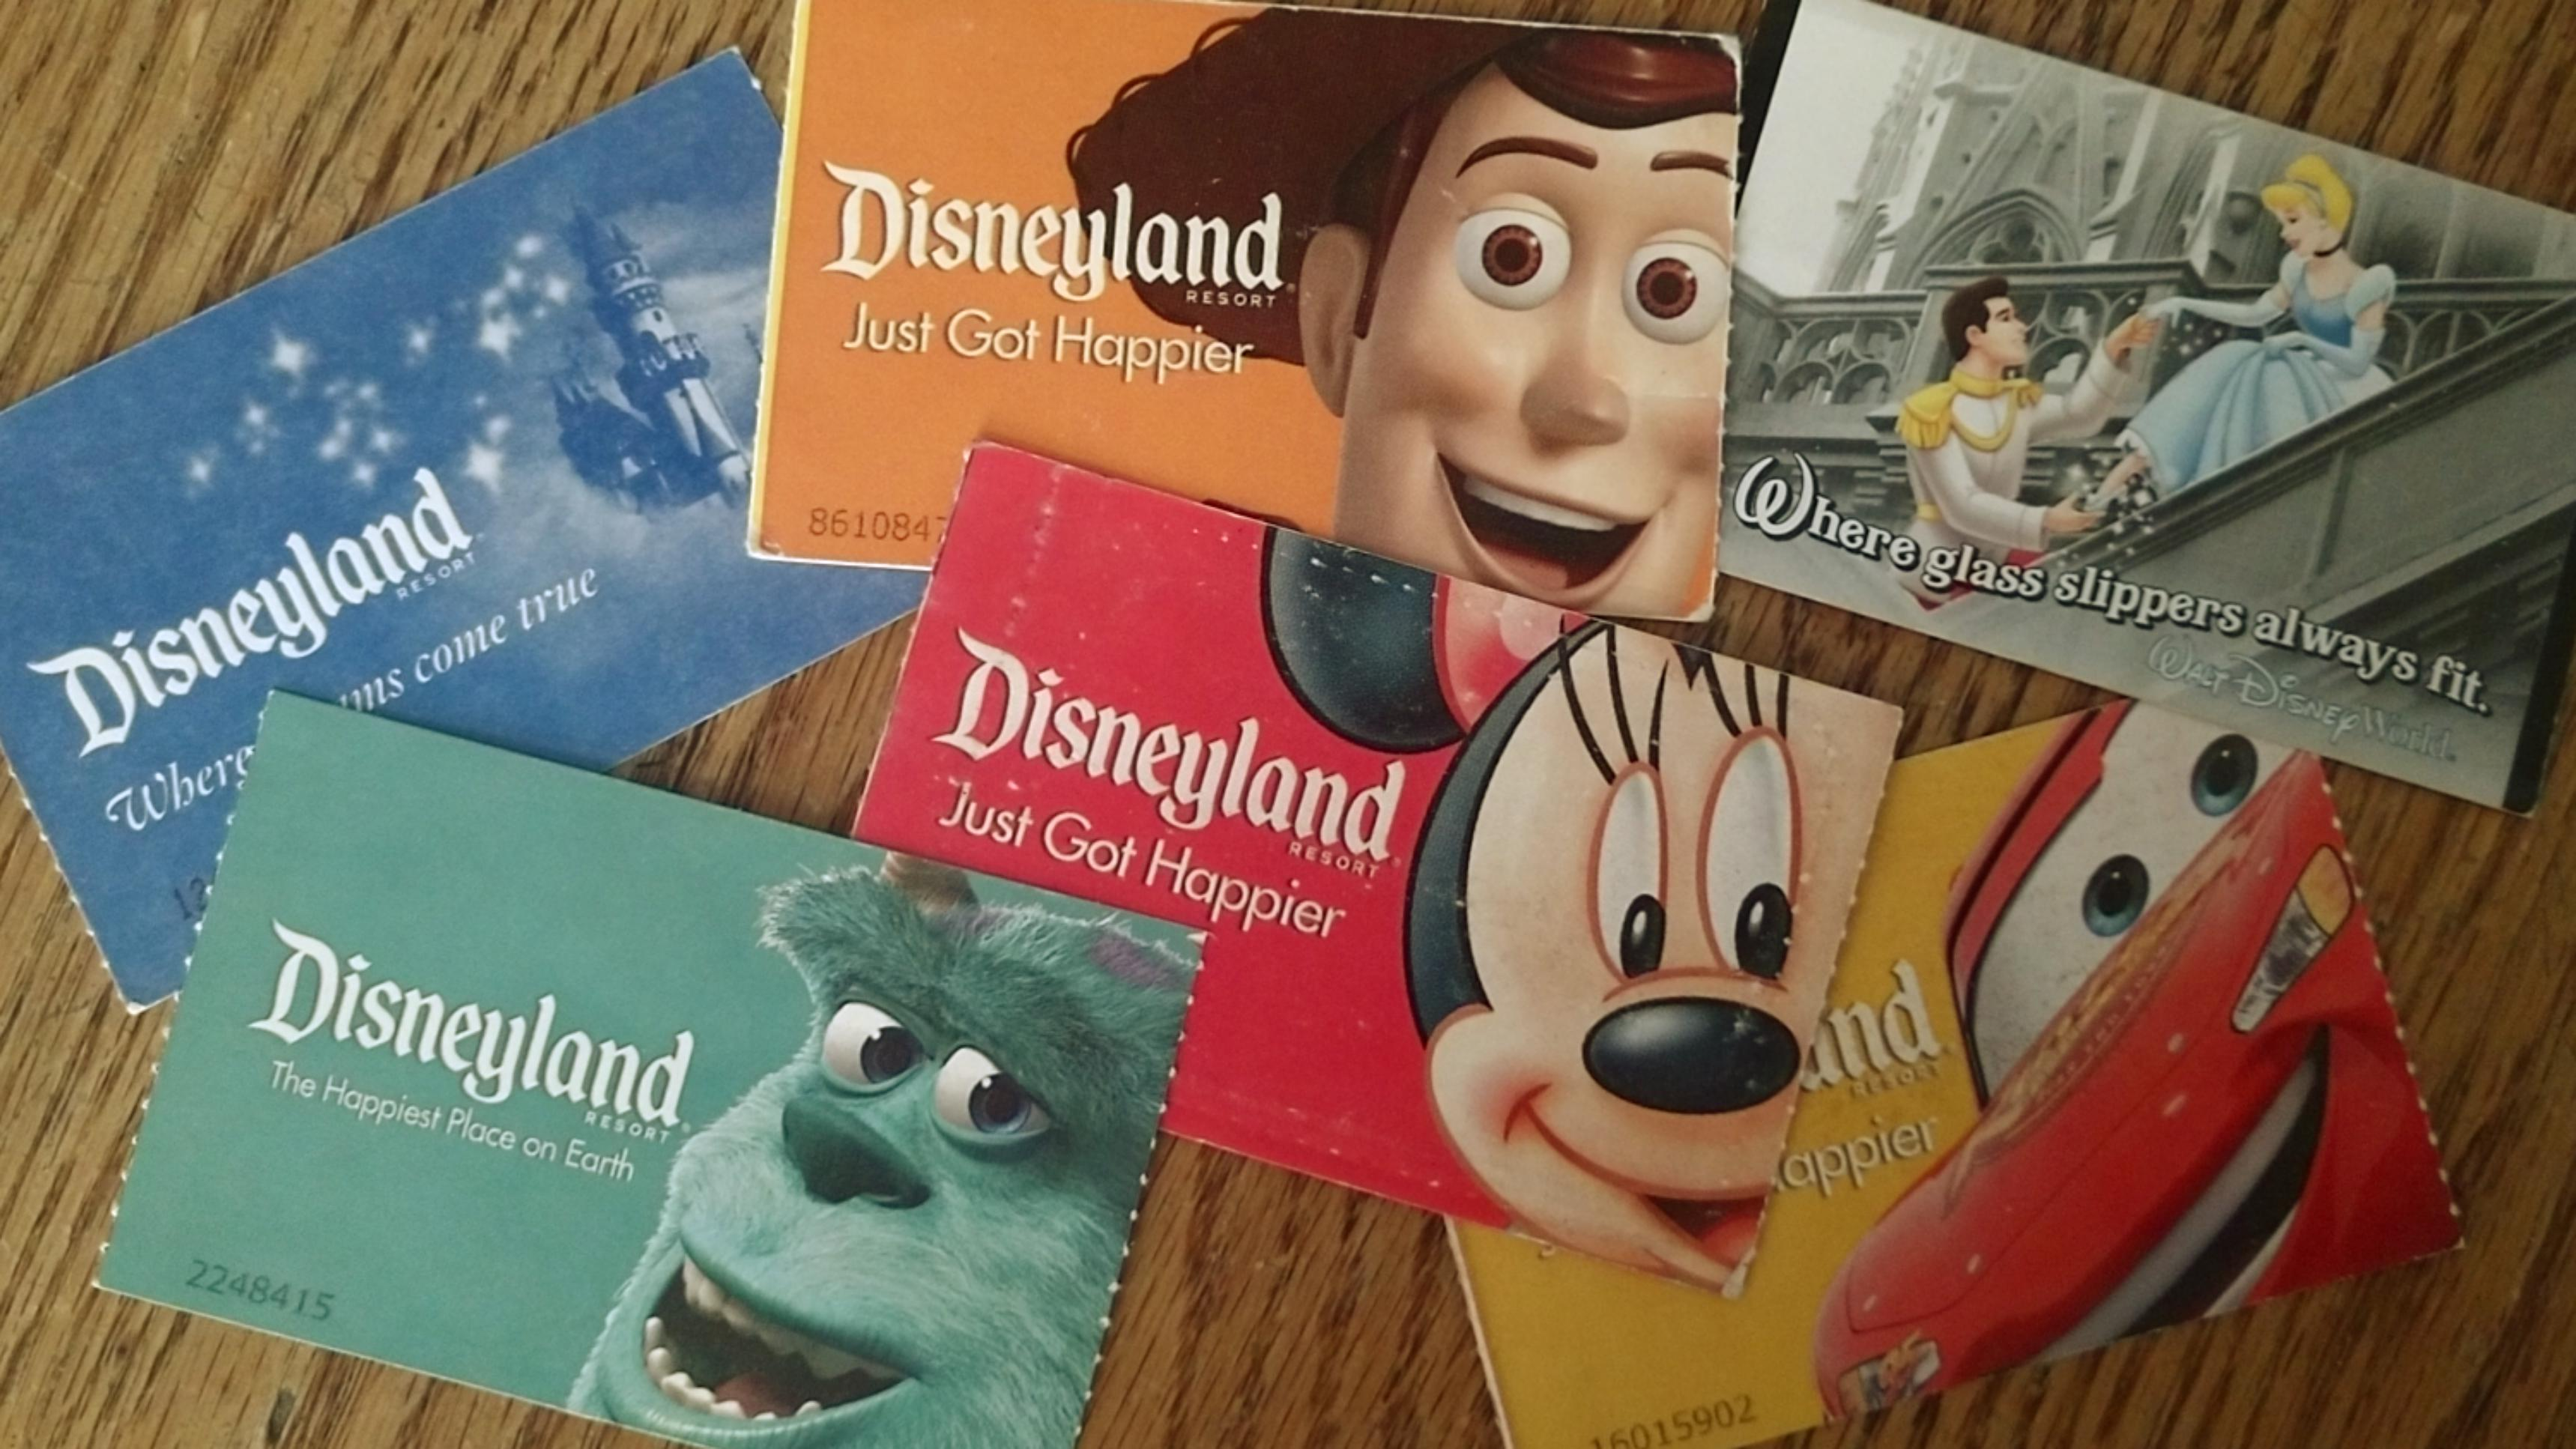 Tickets to Disneyland and Disney World